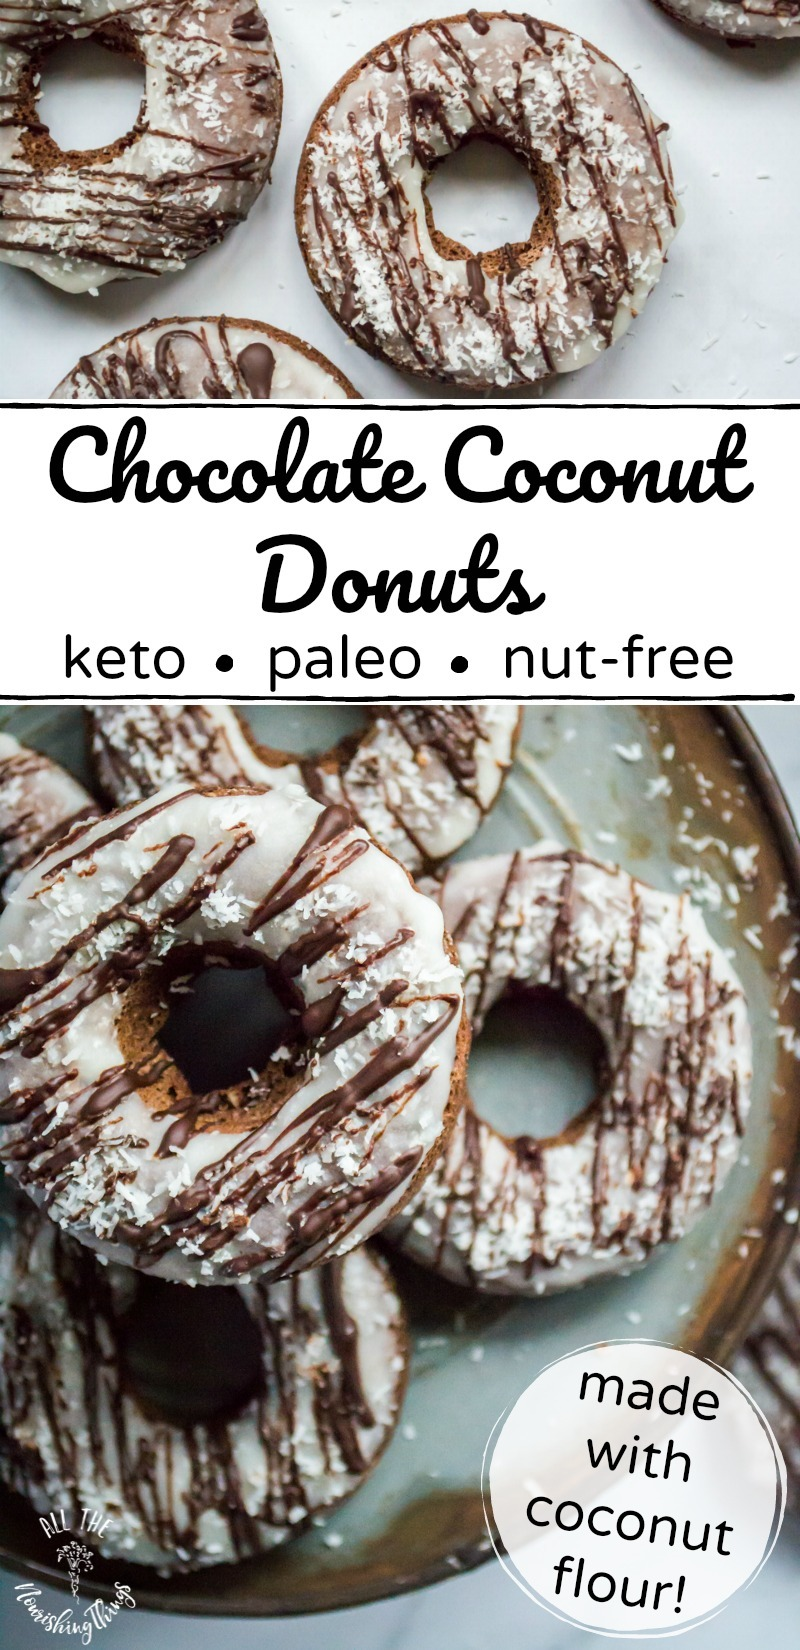 keto chocolate coconut donuts with text overlay